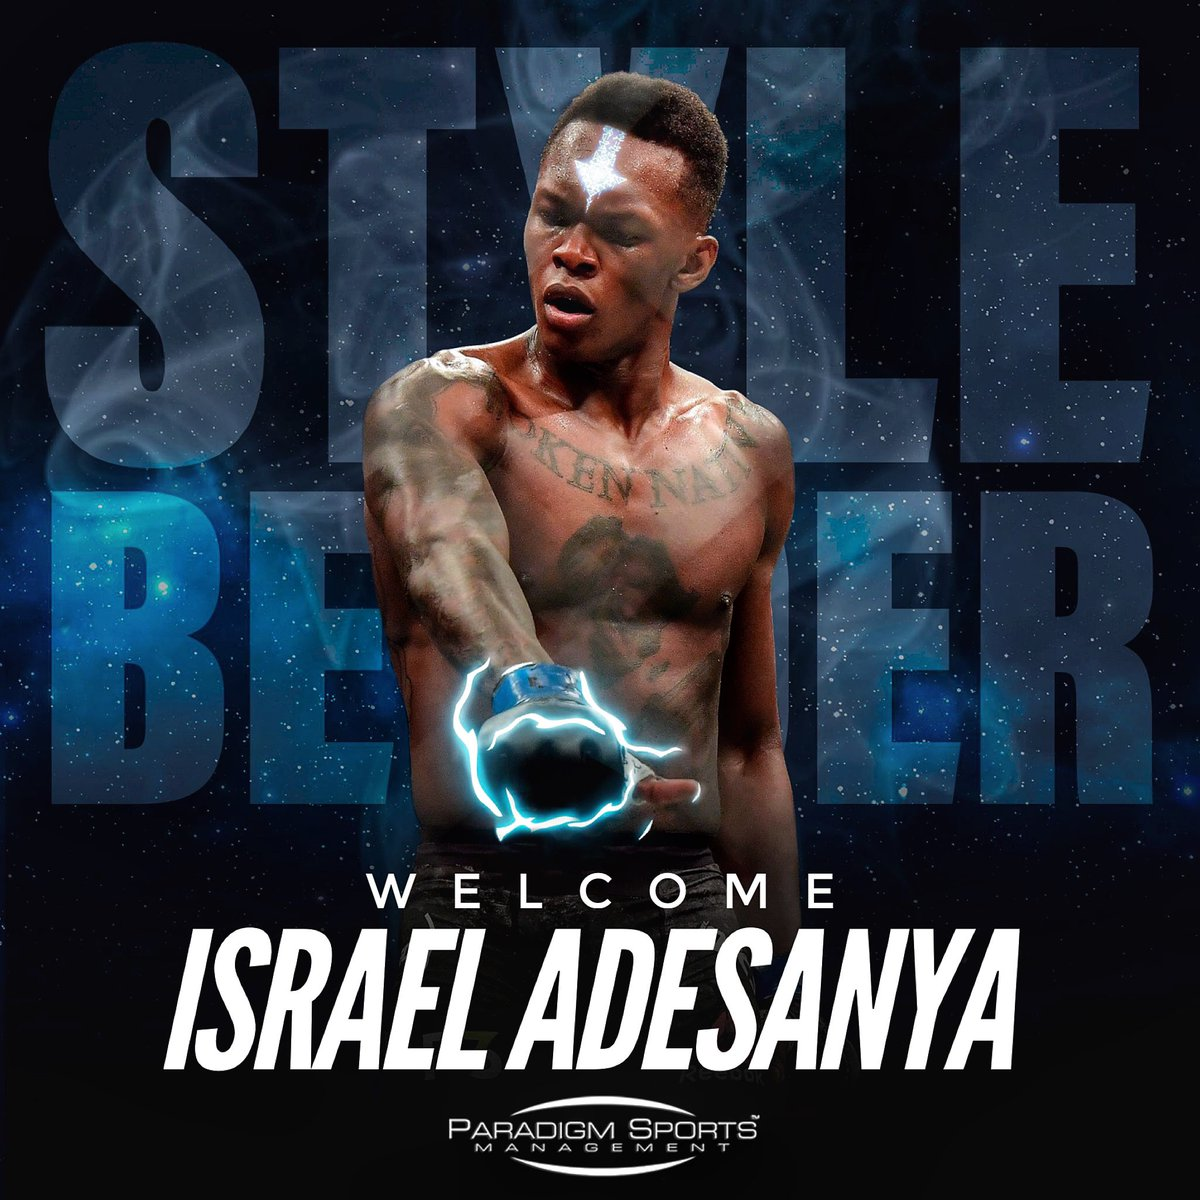 We're excited to welcome Israel Adesanya (@stylebender) to the Paradigm team for full service representation!  Israel is a fighter of the highest caliber and we look forward to working with him as he fights to unify the UFC Middleweight Championship and beyond. 🇳🇿🇳🇬 #GP